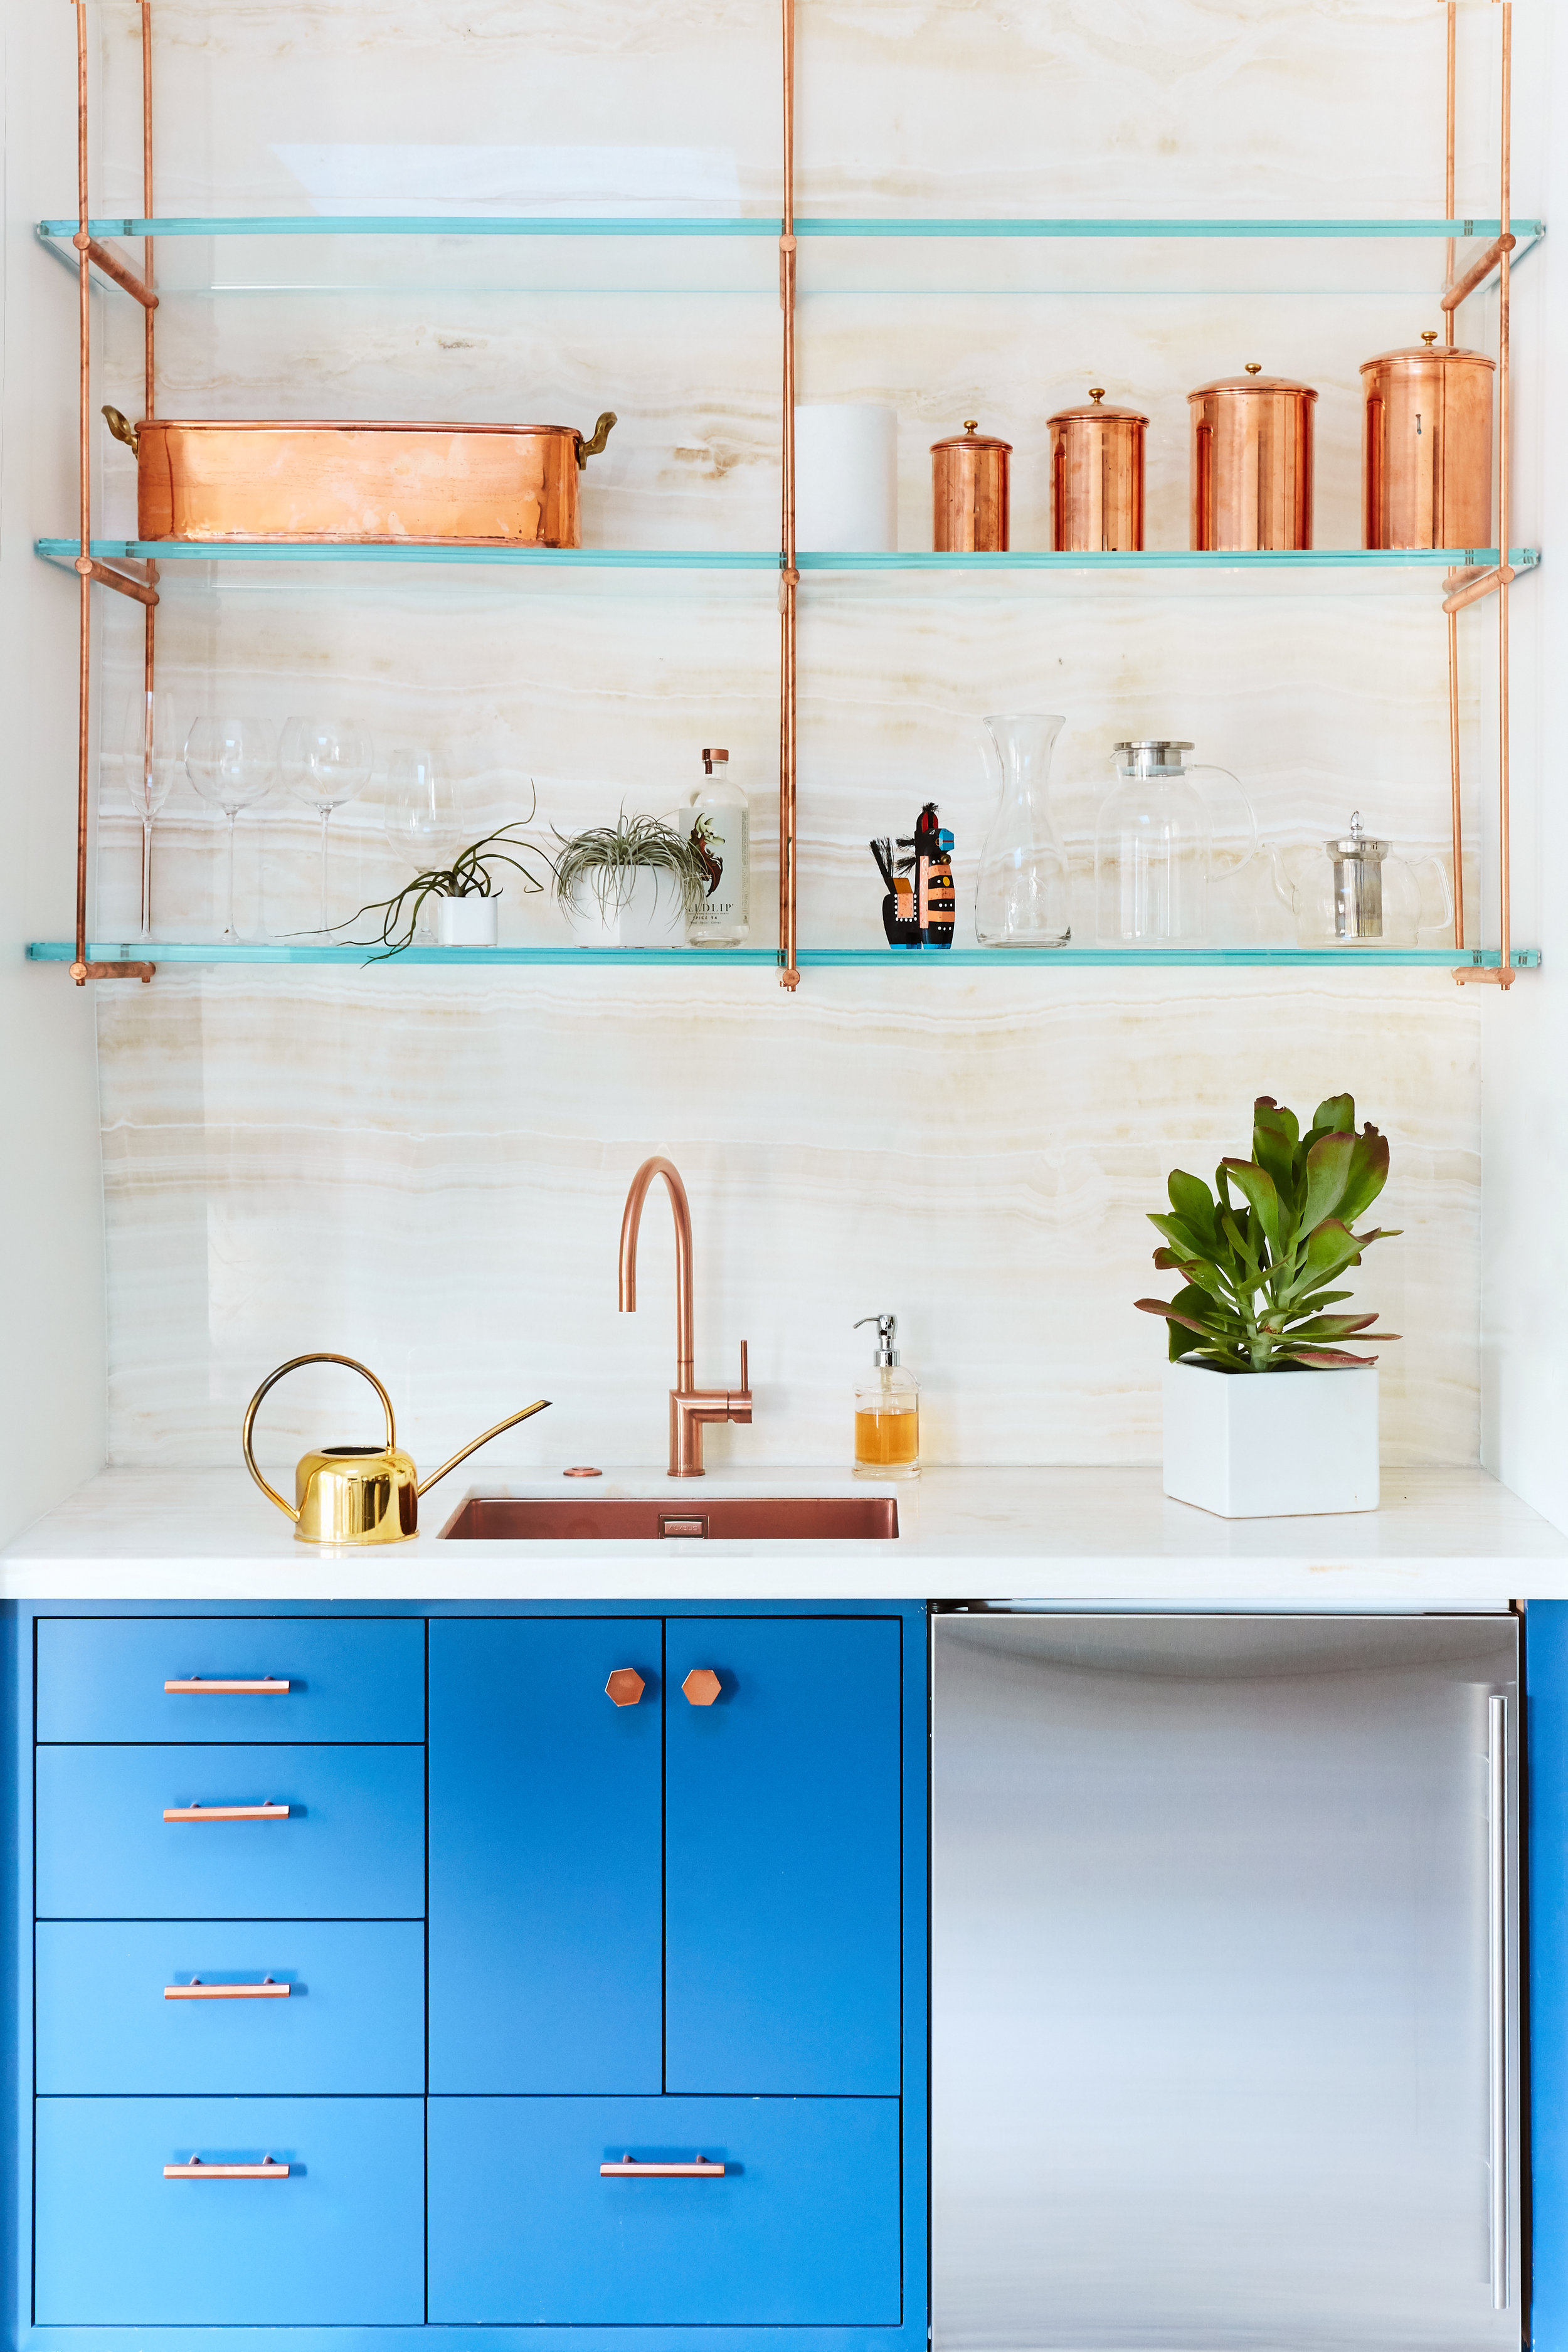 Noz Design - Pac Heights House with a Roof - Copper kitchenette.jpg